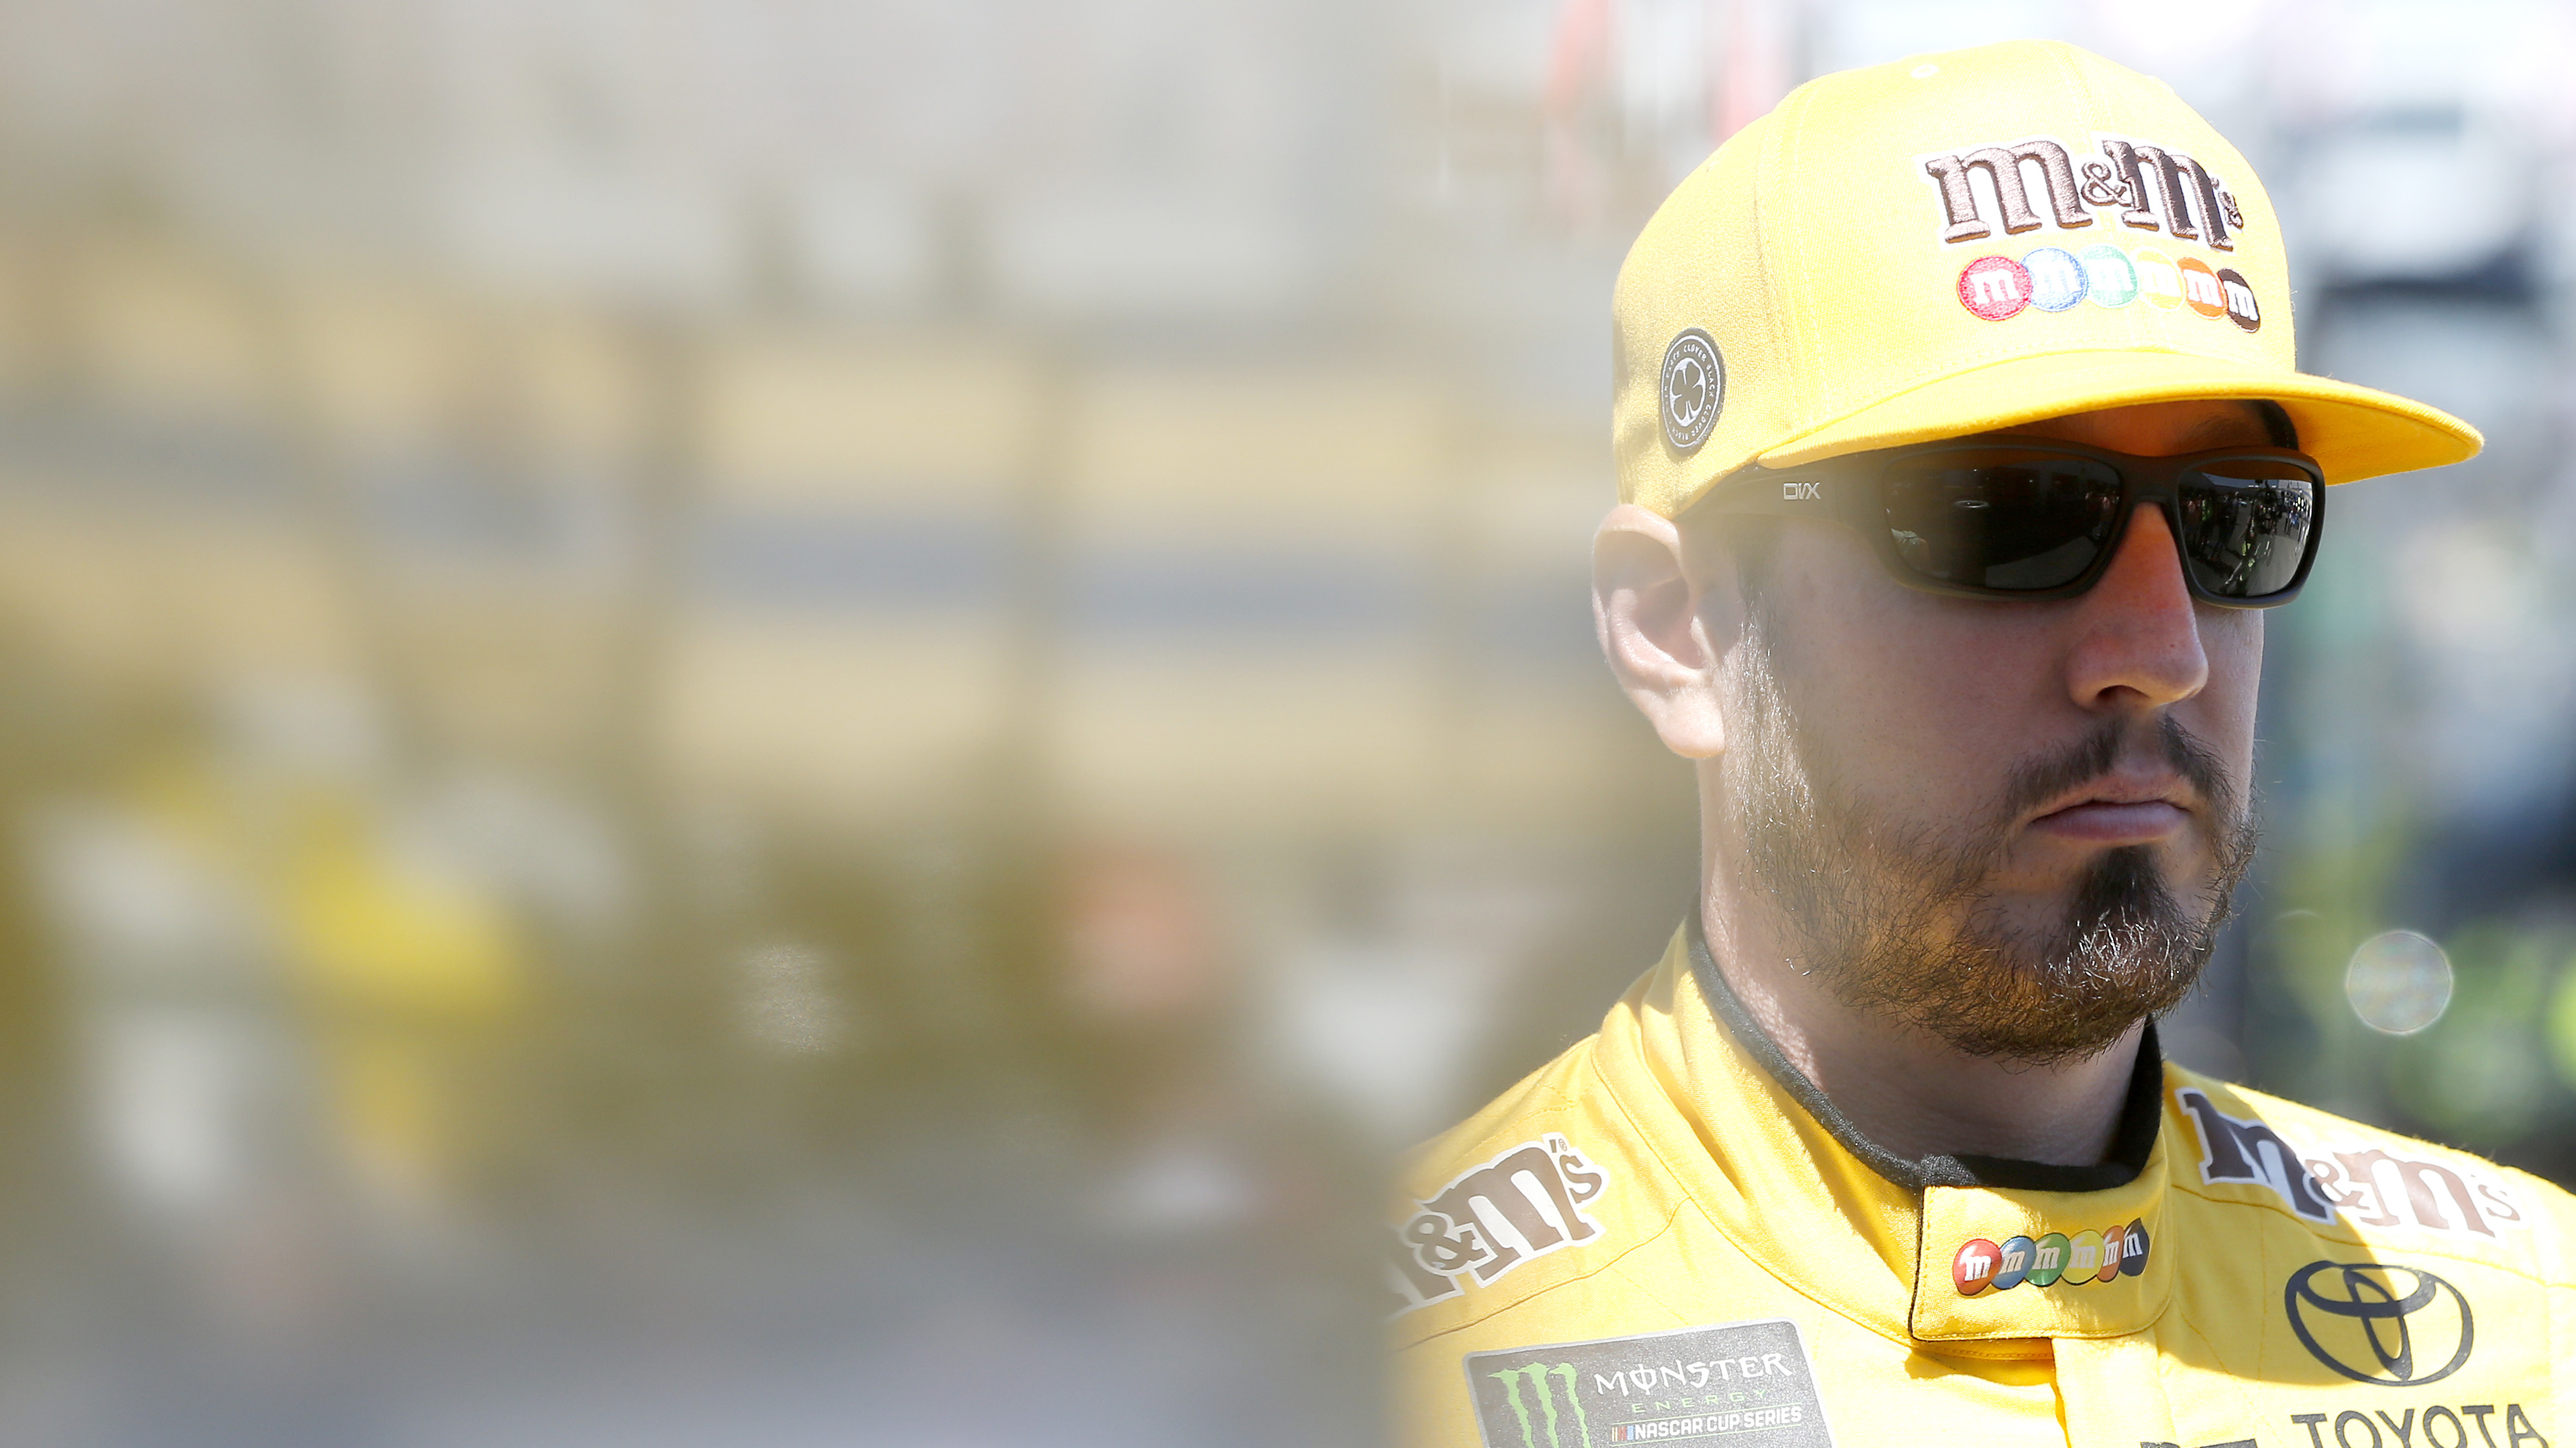 Kyle Busch on overtime finish with brother Kurt: 'Glad it was a